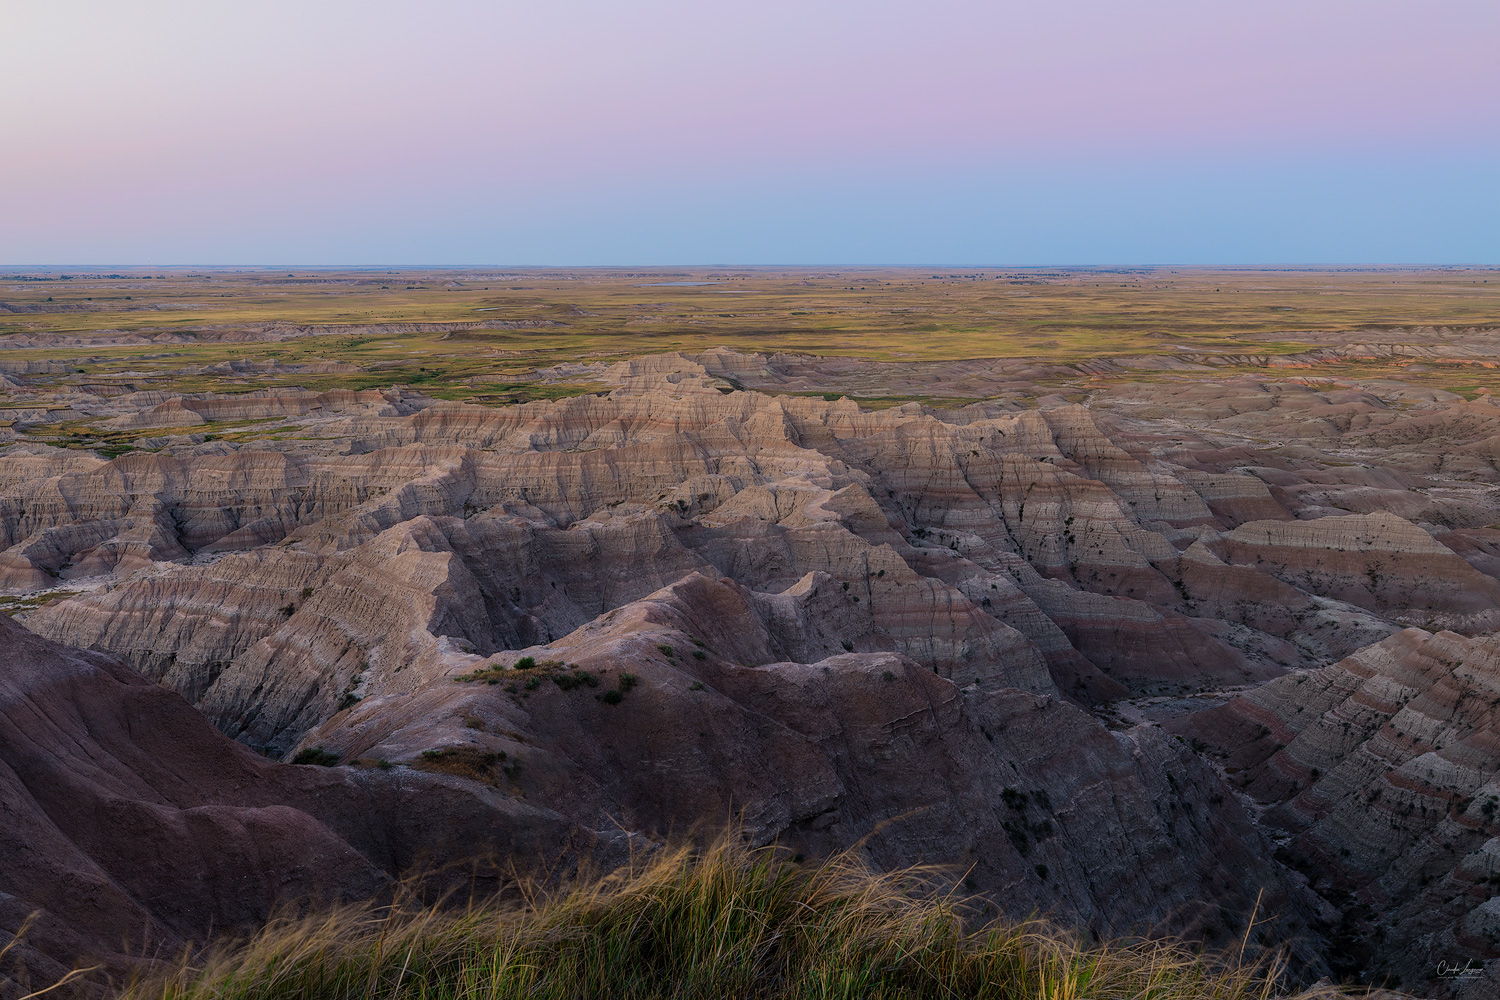 View of colorful buttes at Badlands National Park in South Dakota at sunset.